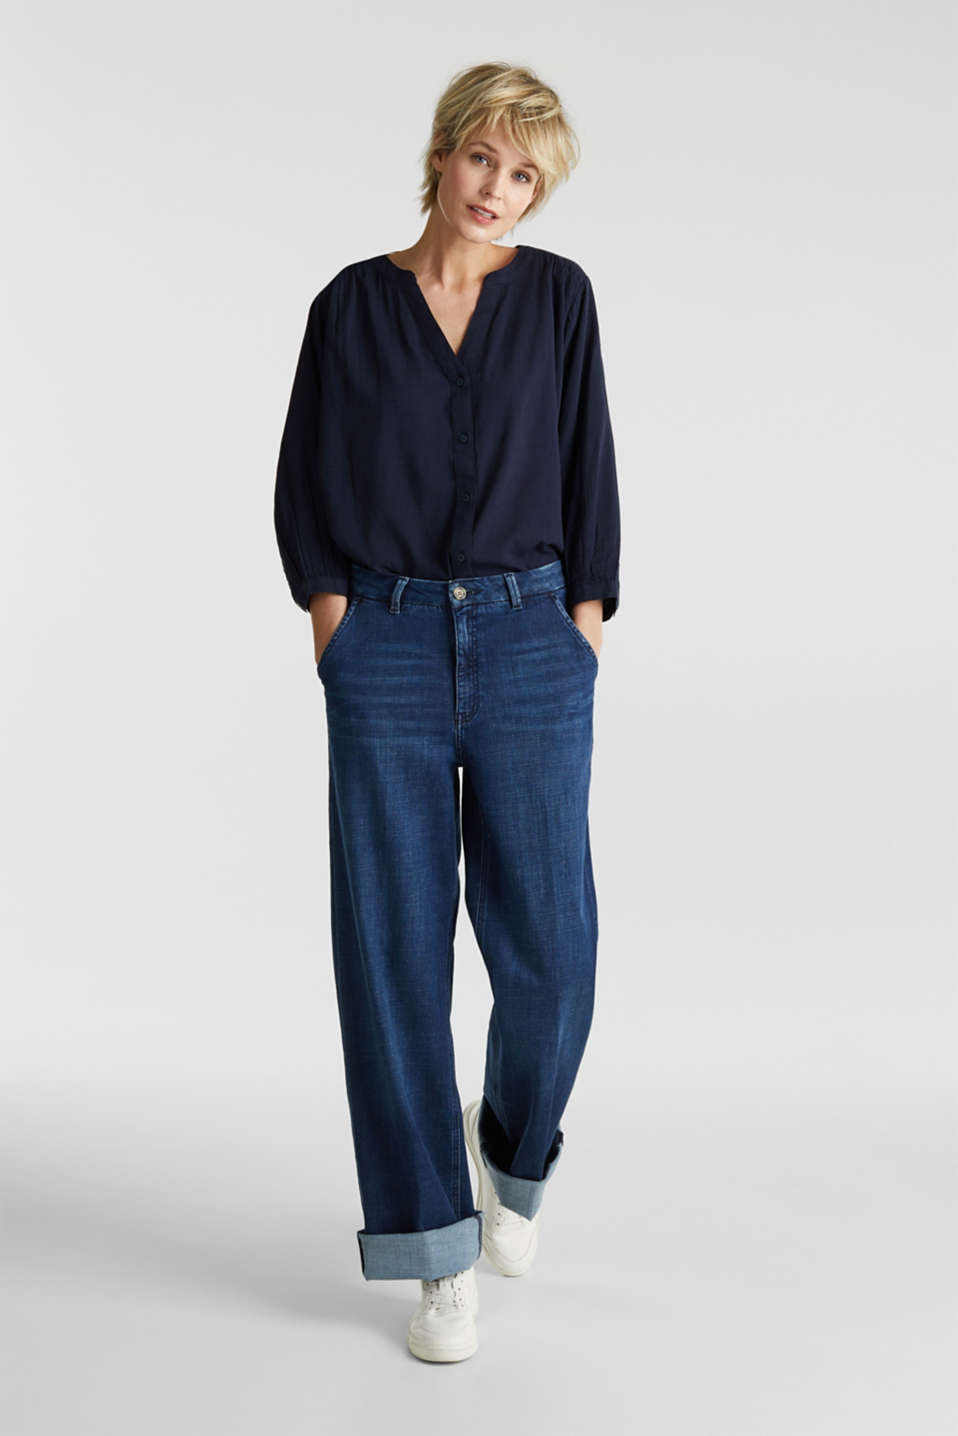 Textured blouse with batwing sleeves, NAVY, detail image number 1